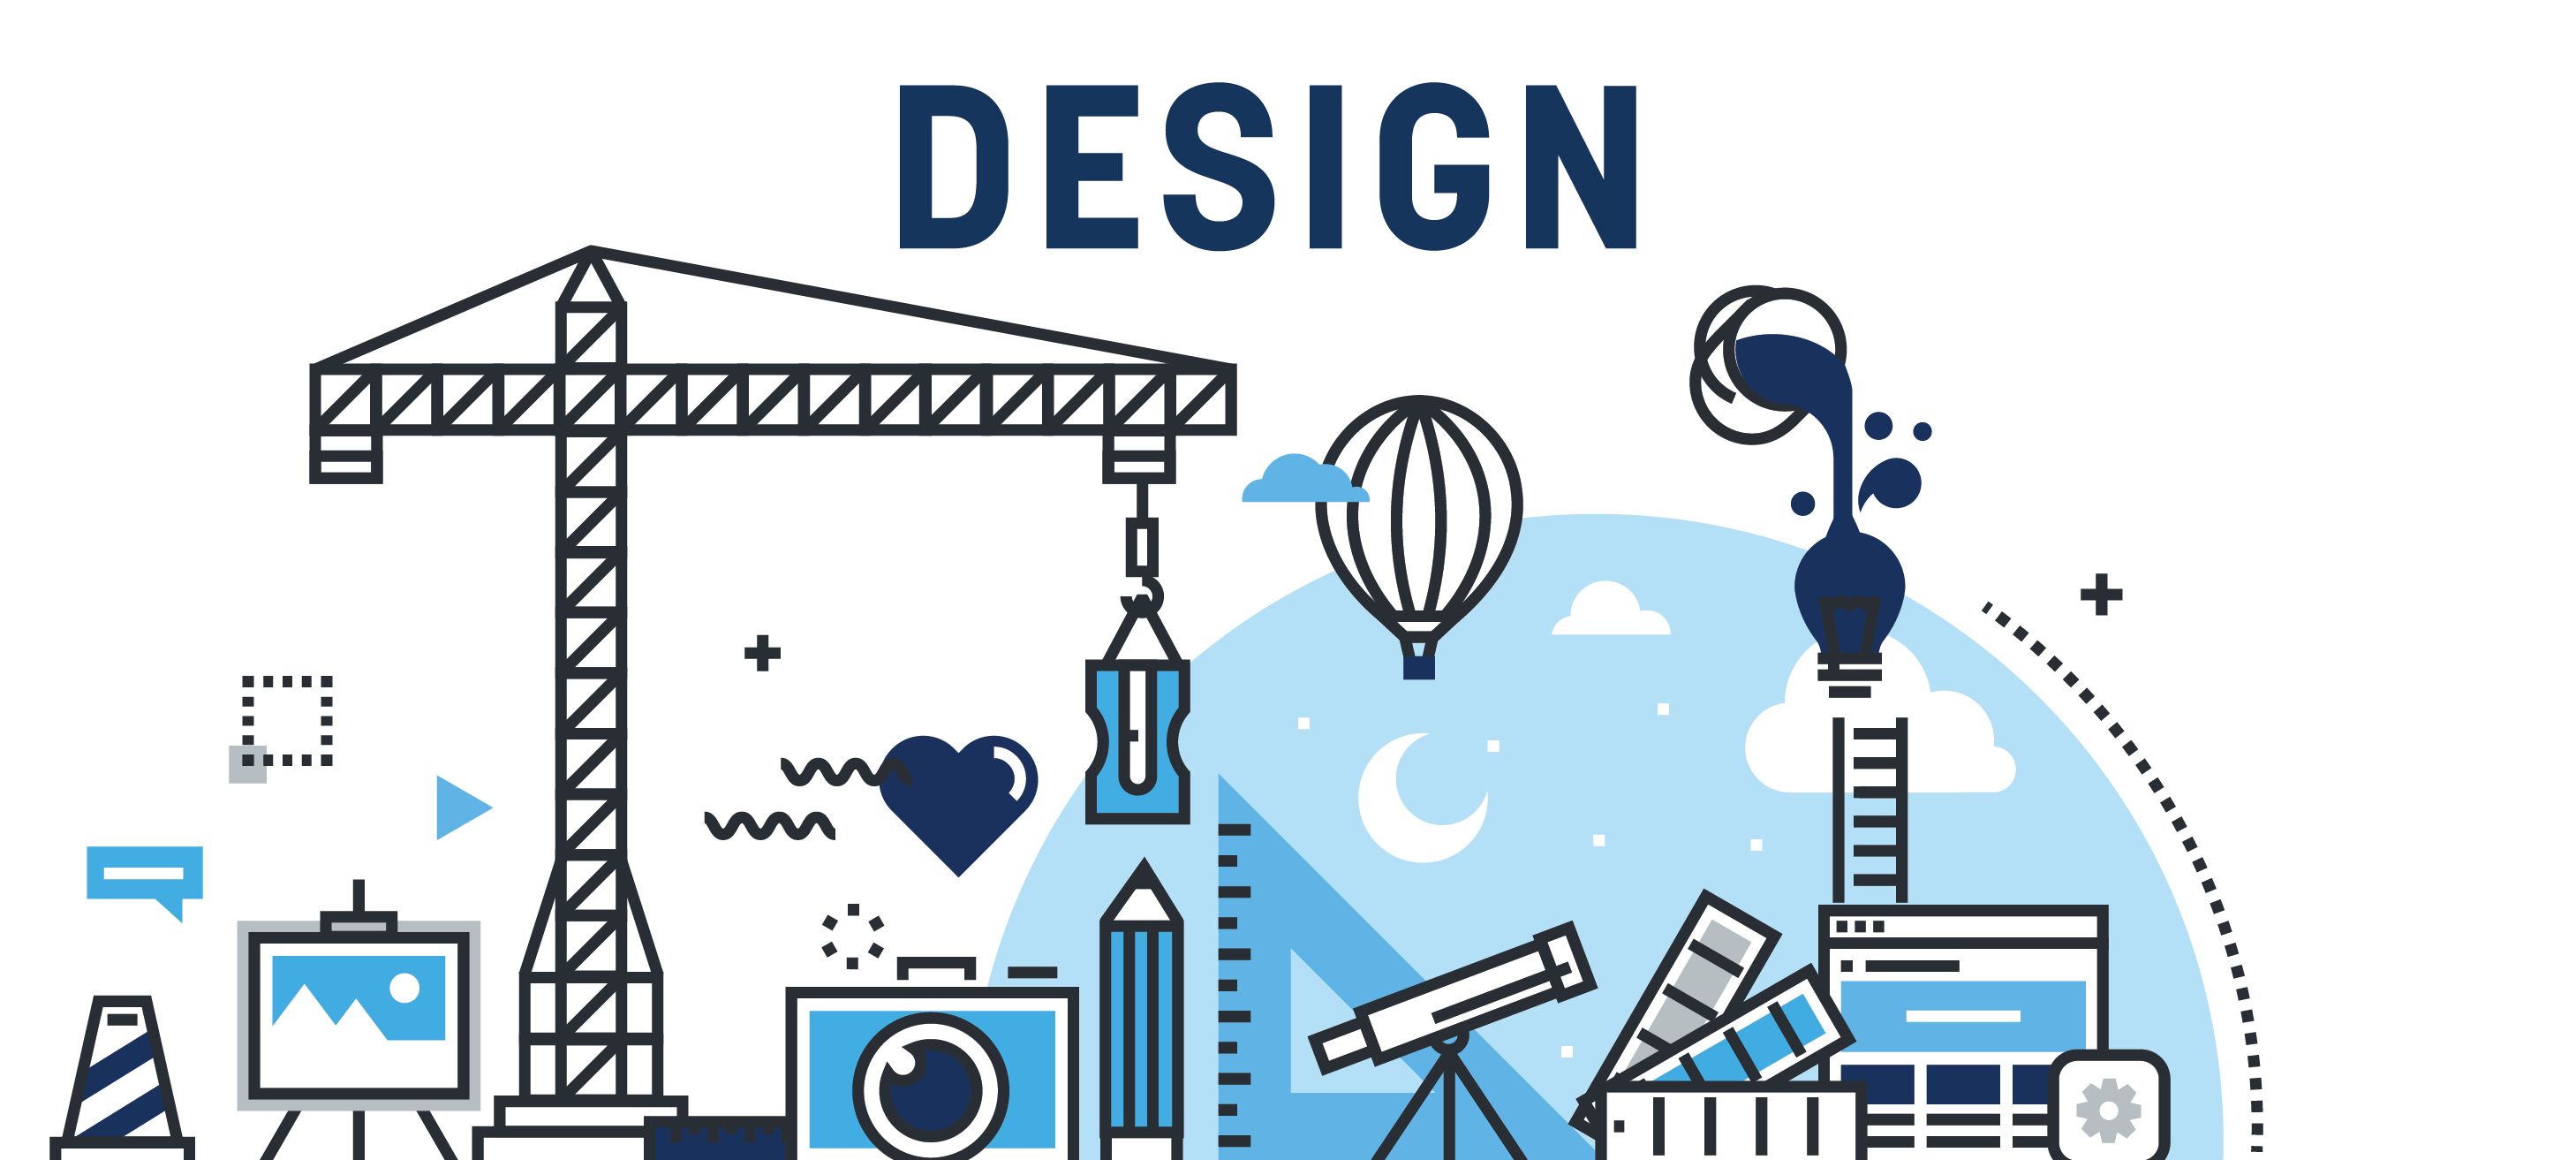 design guidance logo and banner